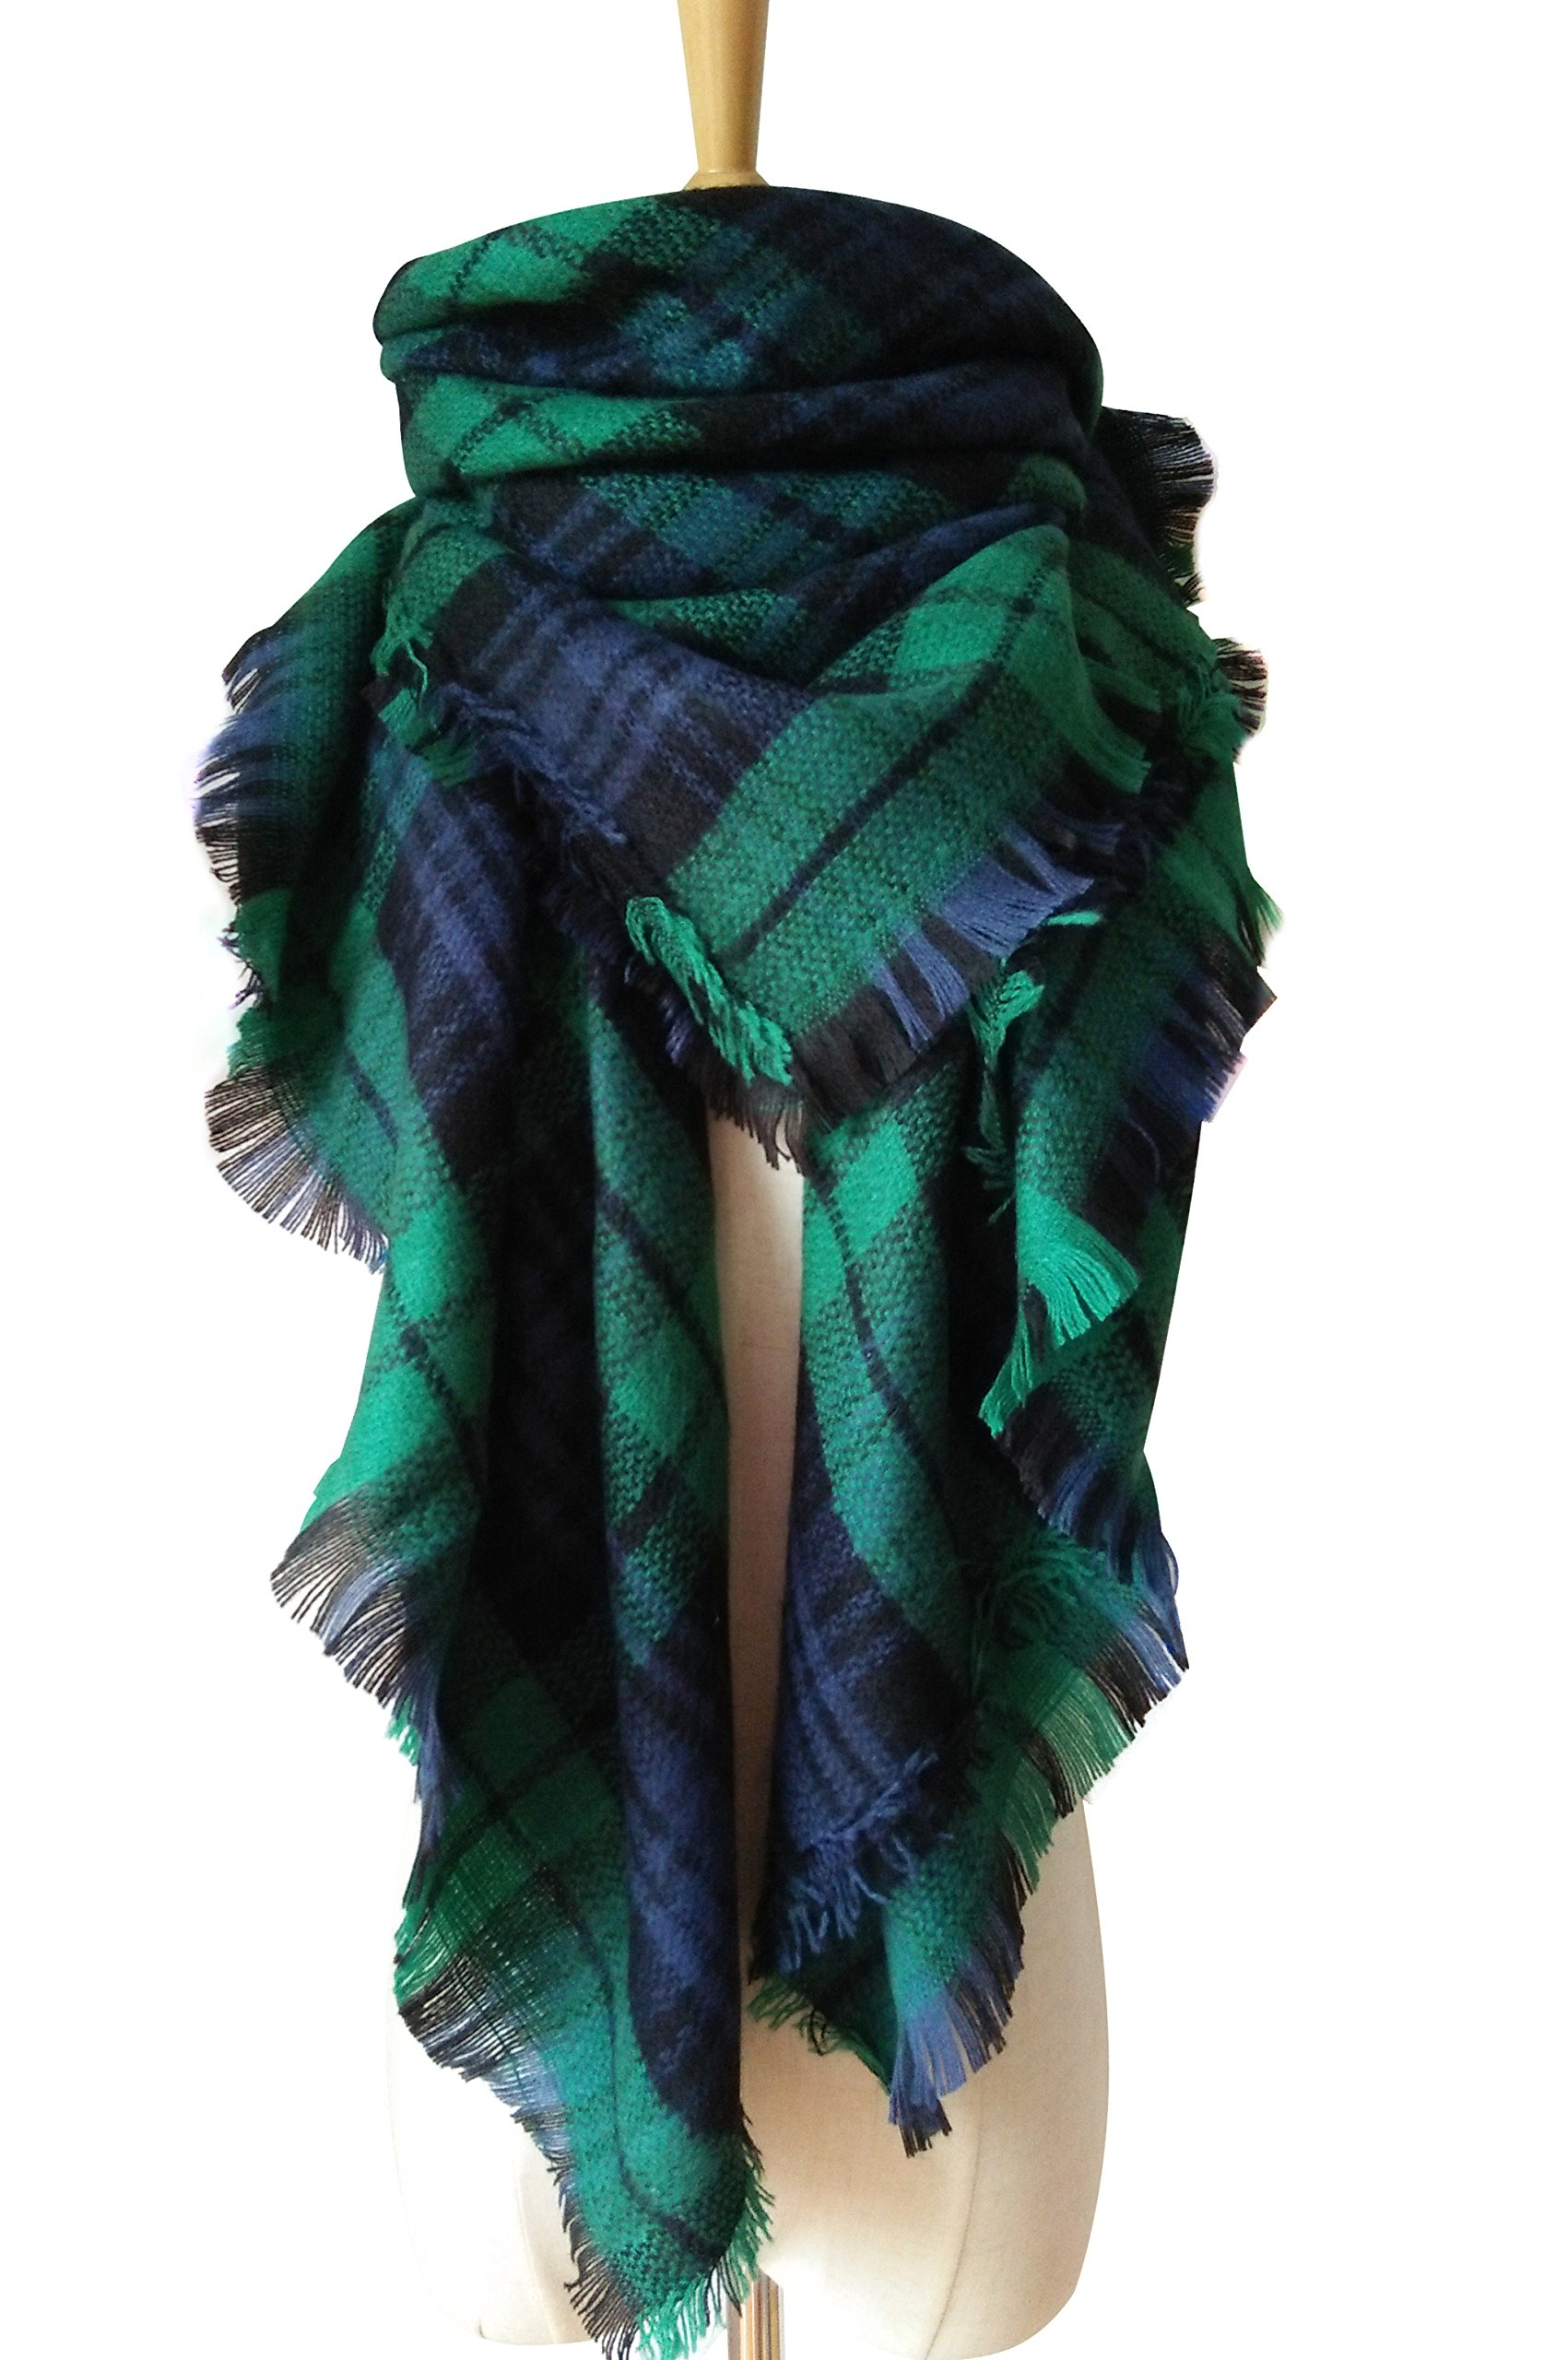 MOTINE Tartan Blanket Scarf Stylish Winter Warm Pashmina Wrap Shawl for Women (Green)